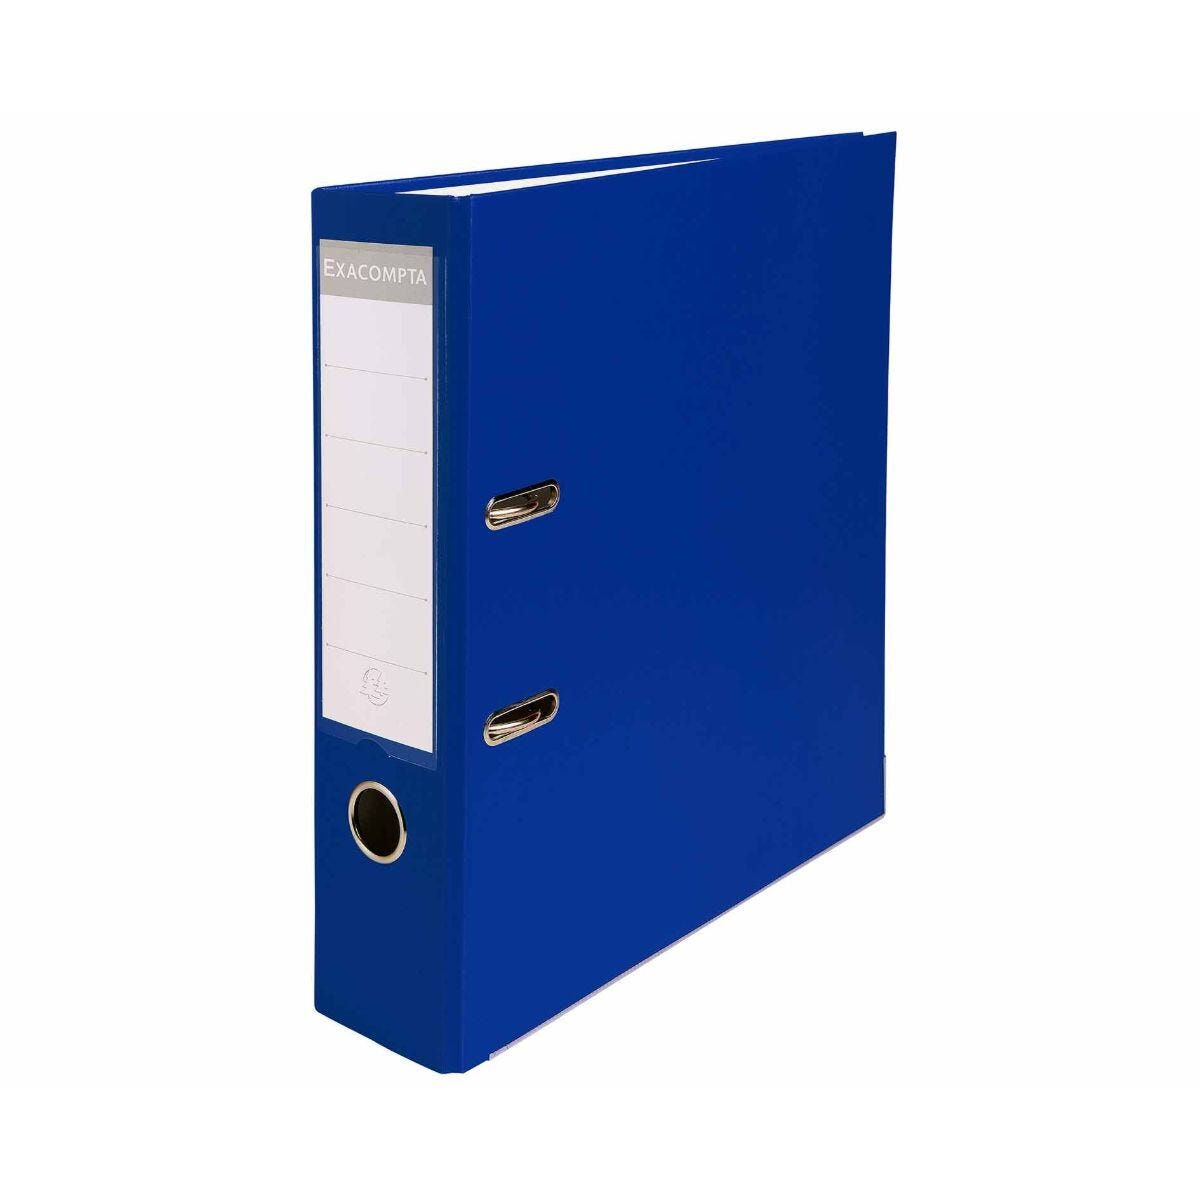 Exacompta Lever Arch File A4 Pack of 20 Blue